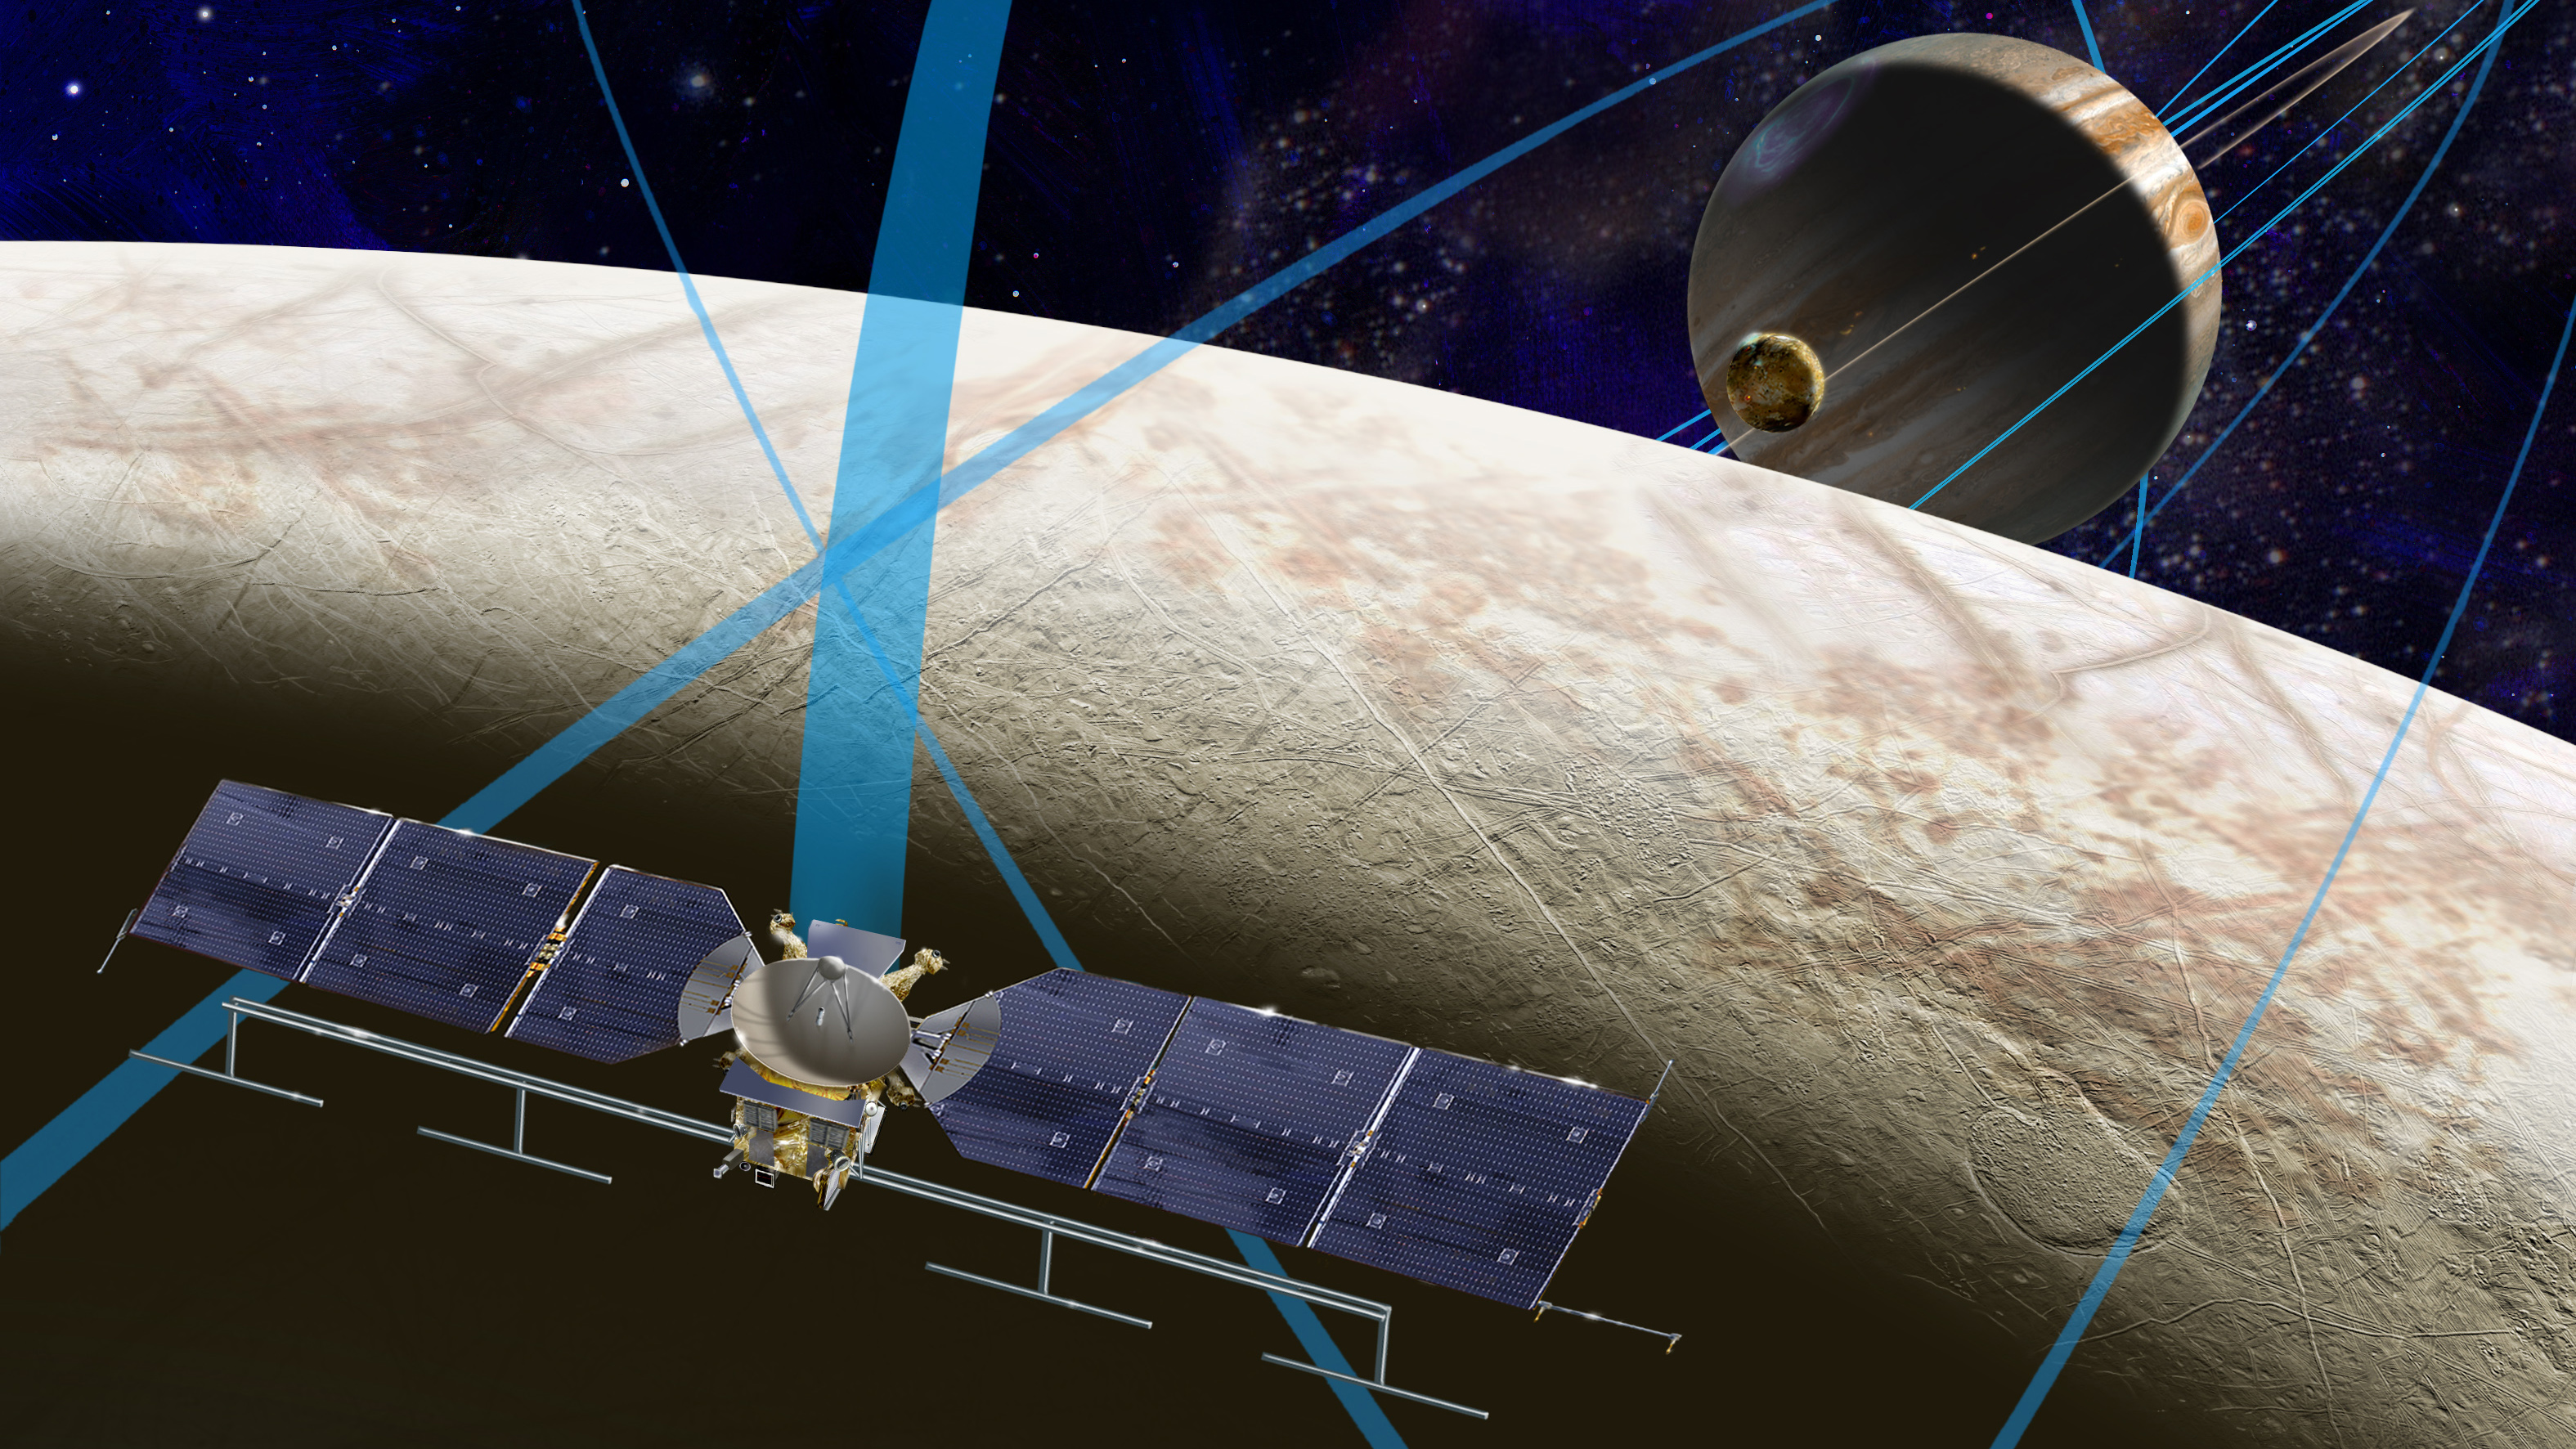 Artist's concept of the Europa Clipper spacecraft NASA plans to send to Jupiter in the 2020s. Credit: NASA/JPL-Caltech